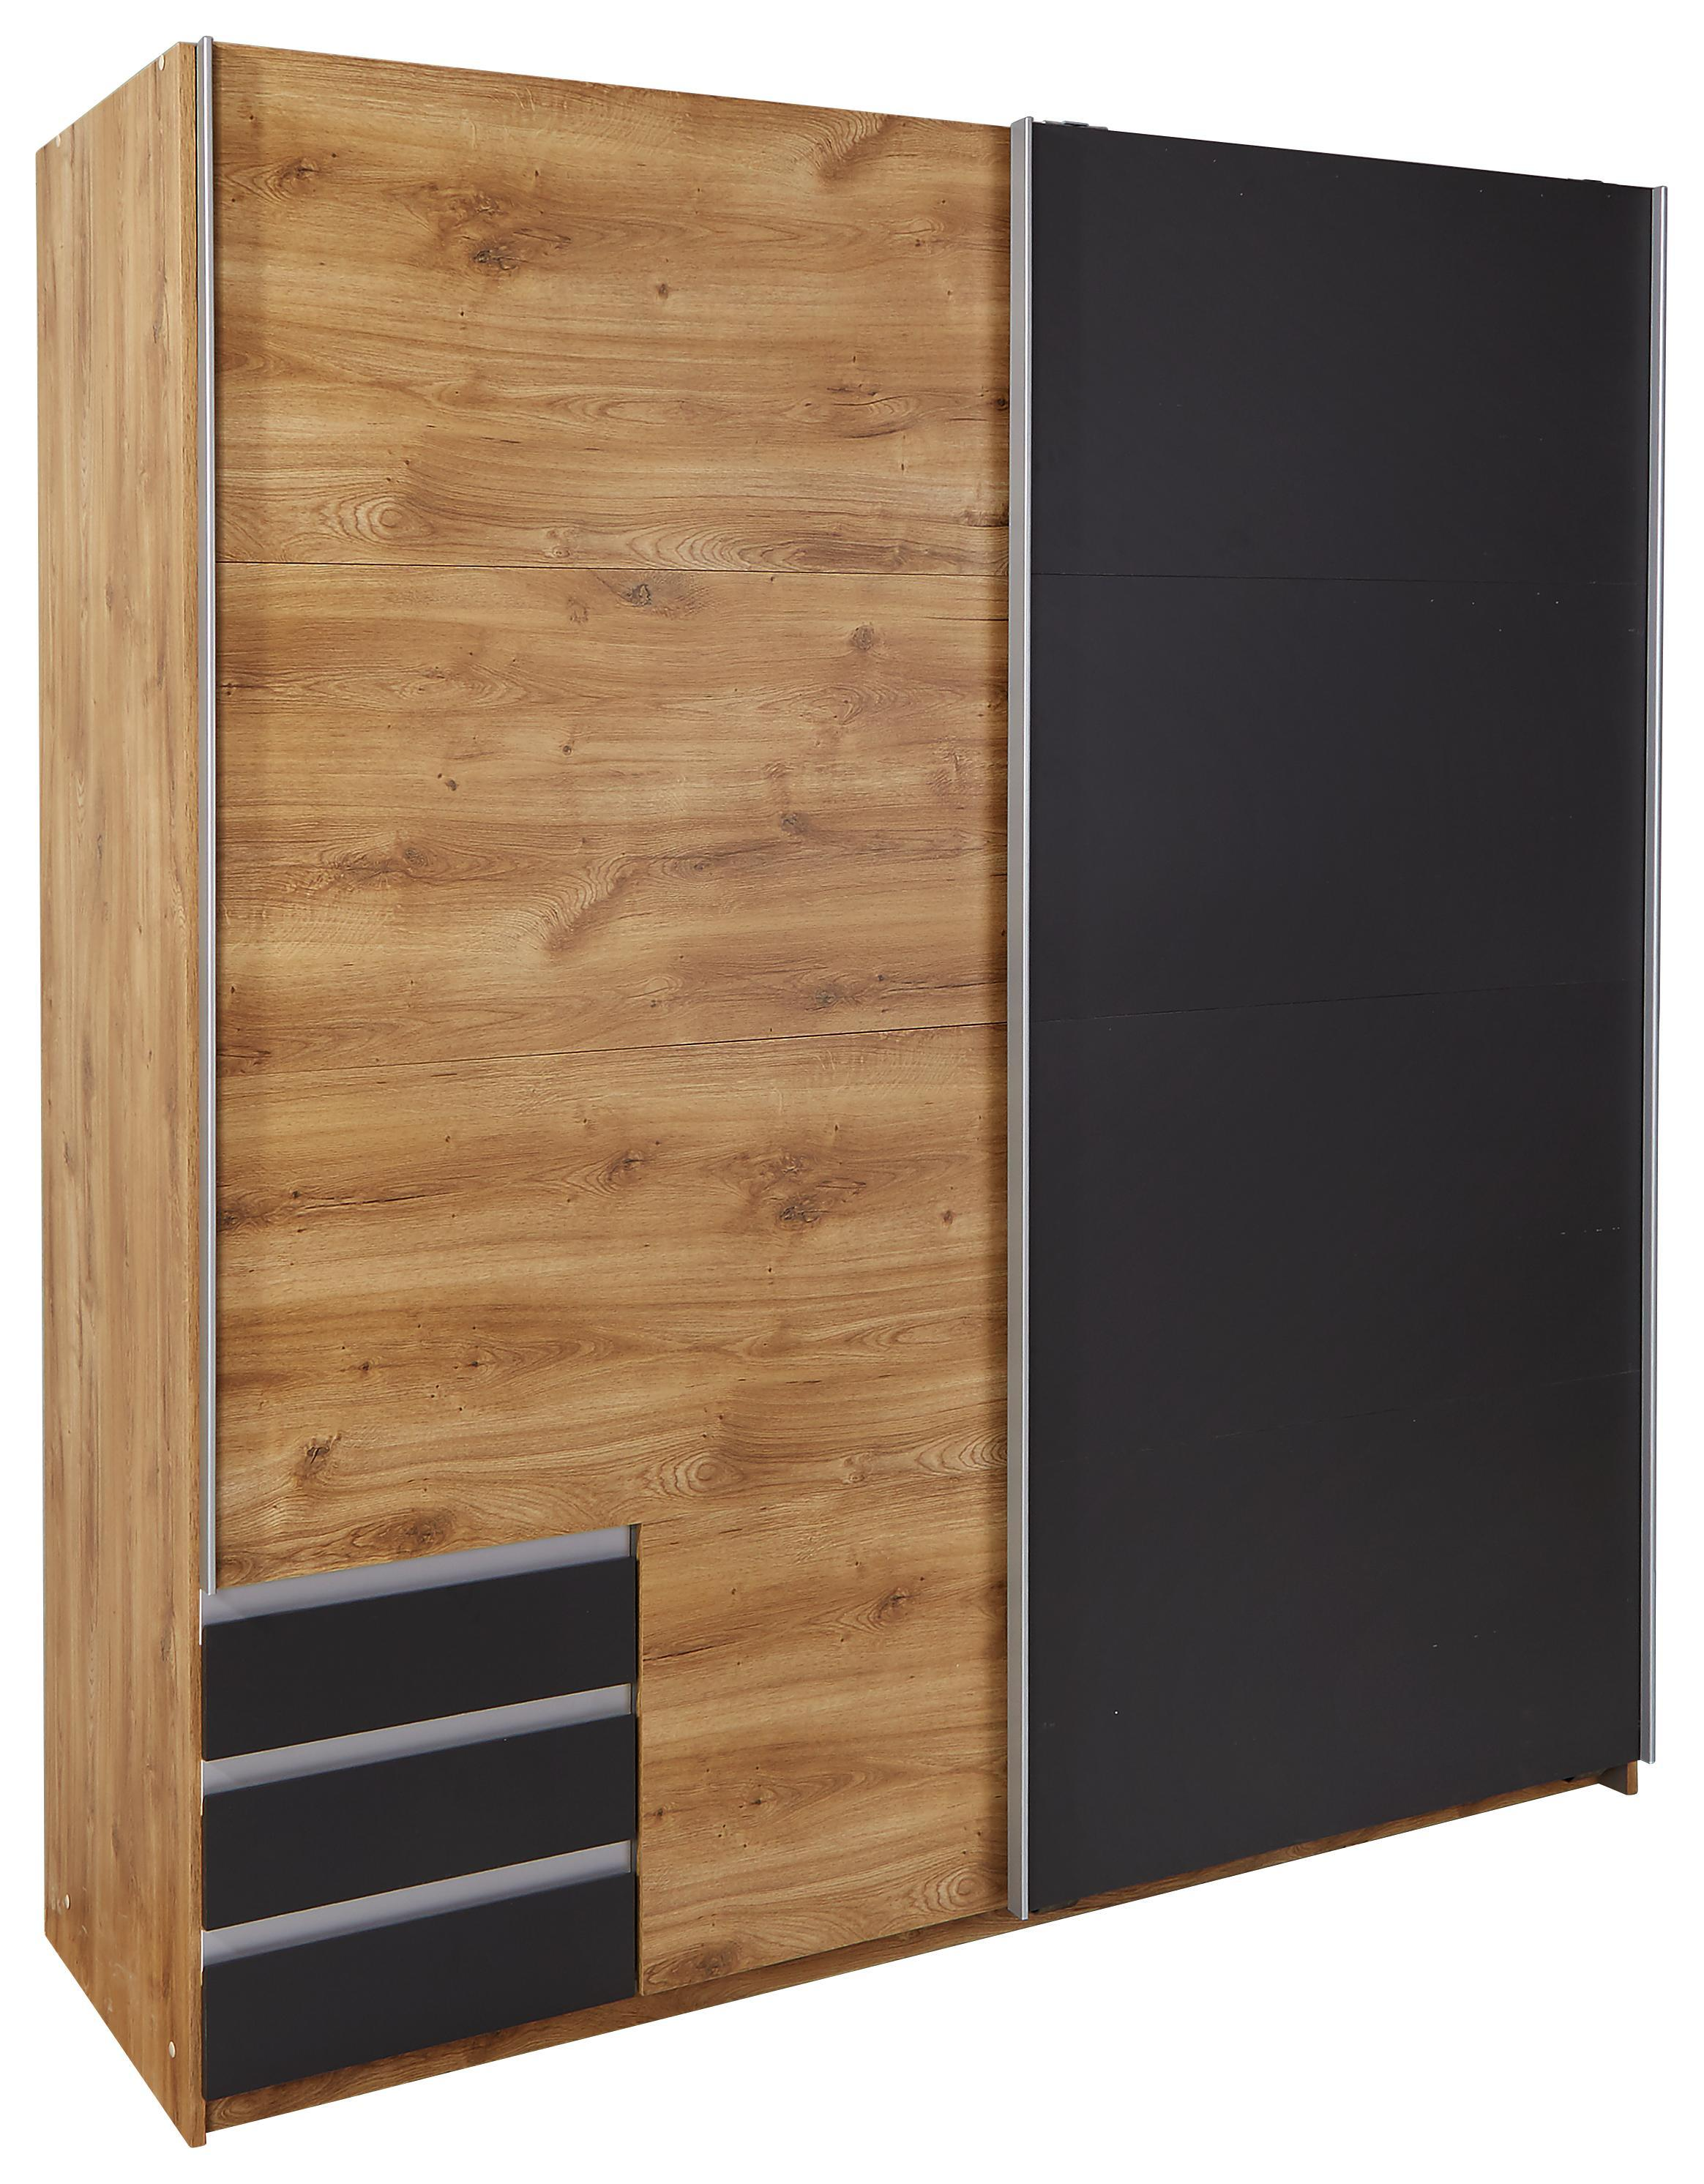 schwebet renschrank mit 3 schubladen. Black Bedroom Furniture Sets. Home Design Ideas